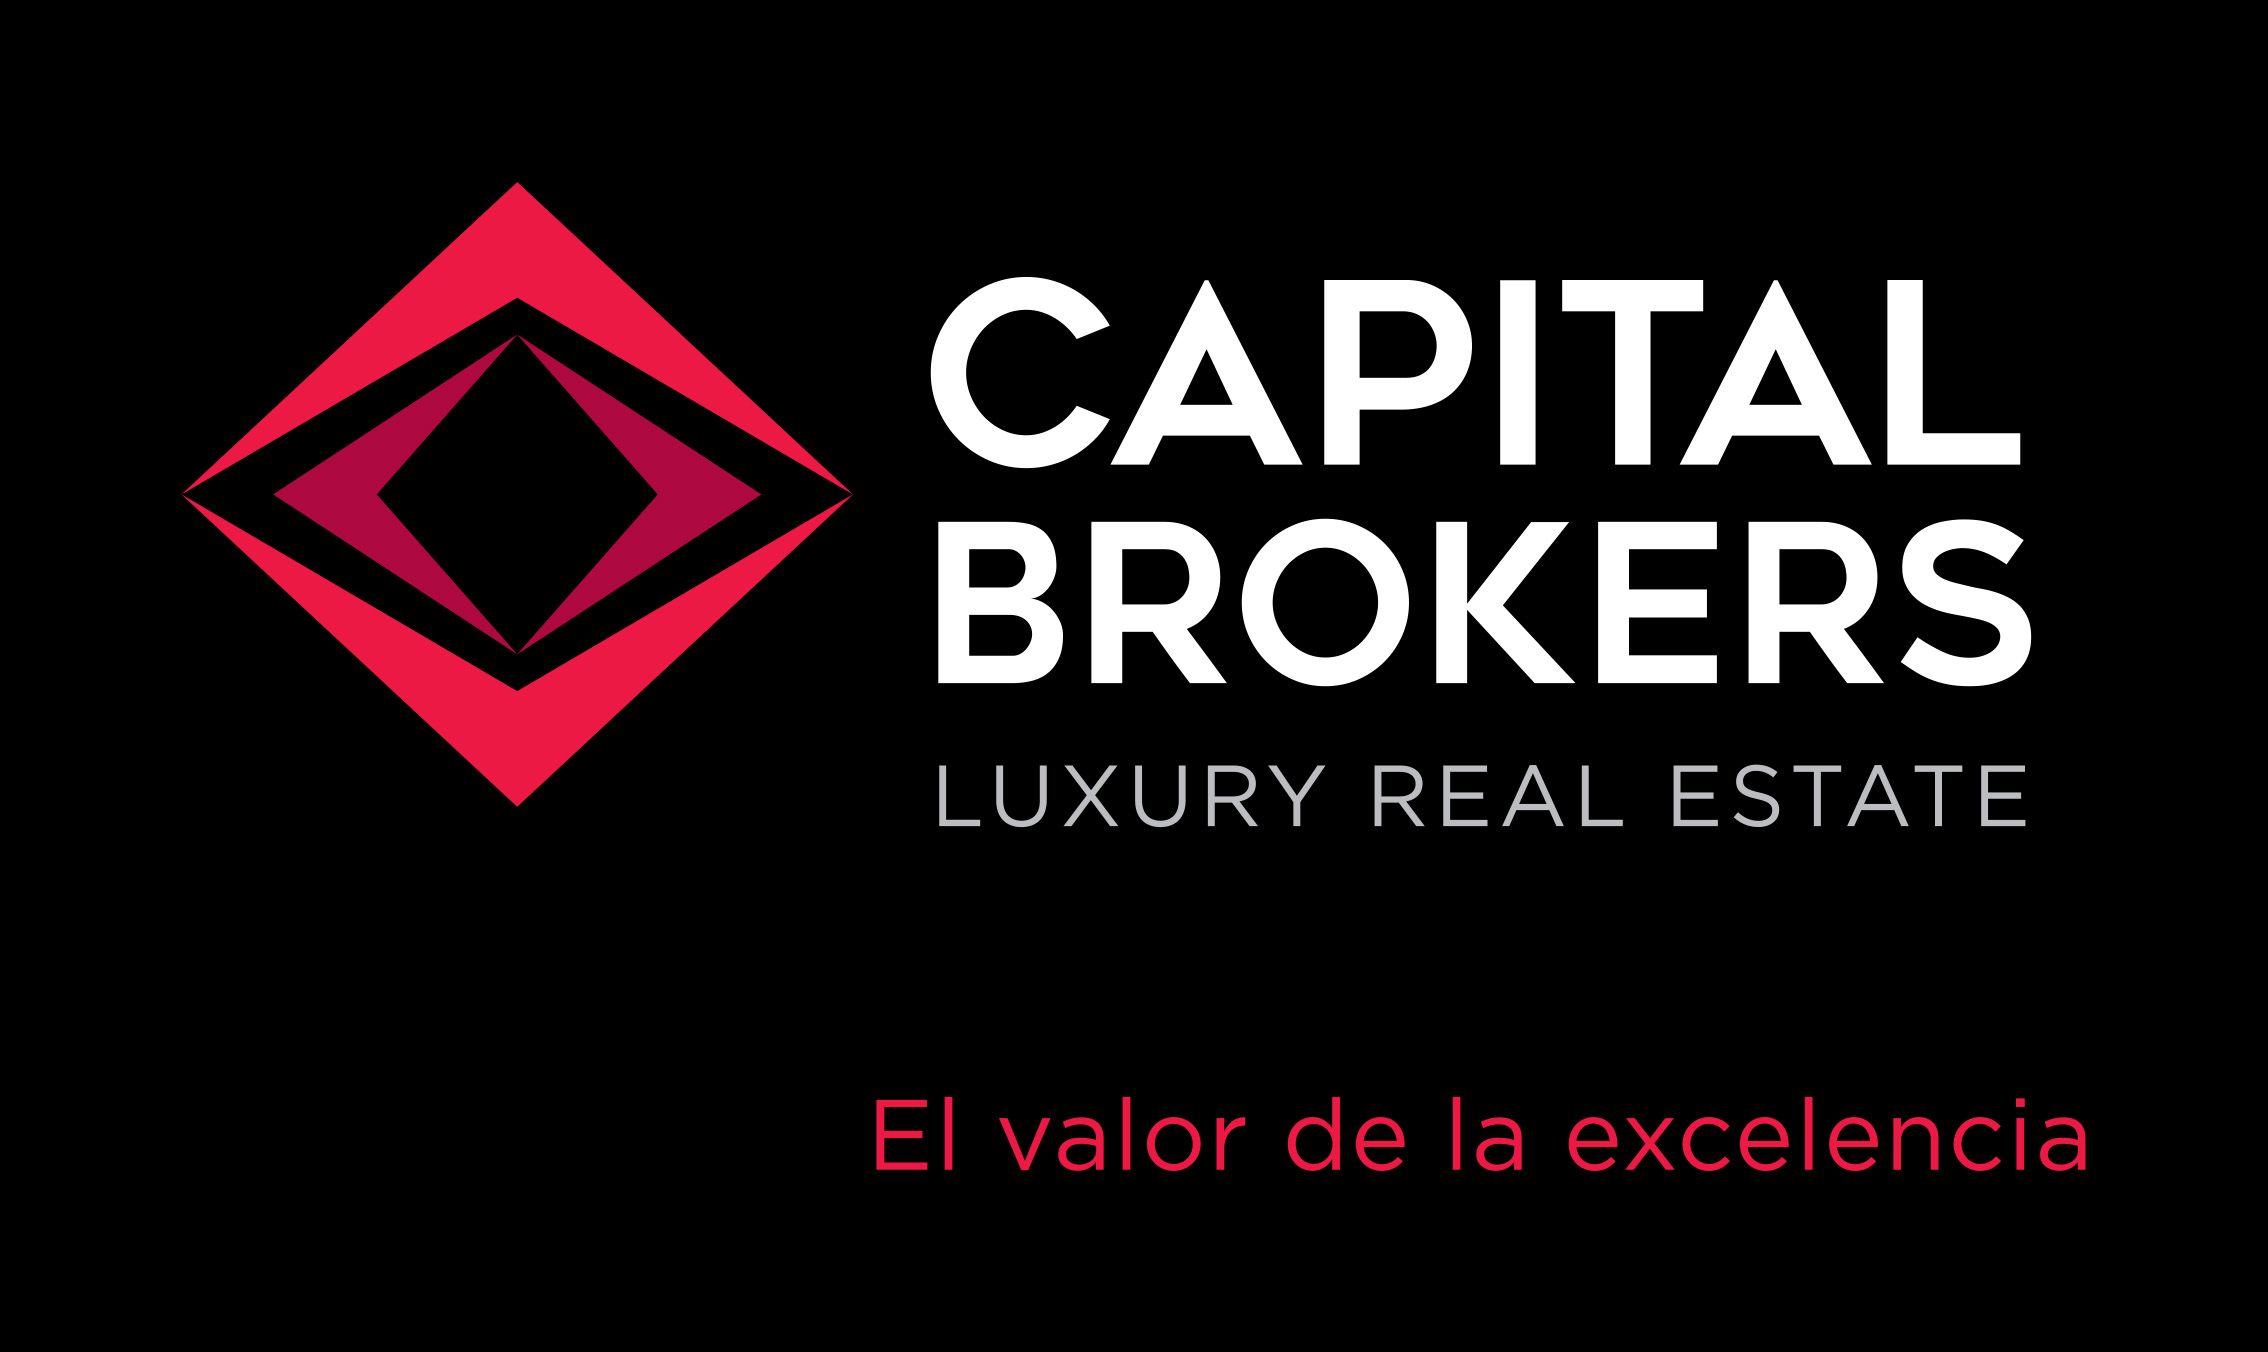 Logo_CapitalBrokers_color_fondo_negro.jpg